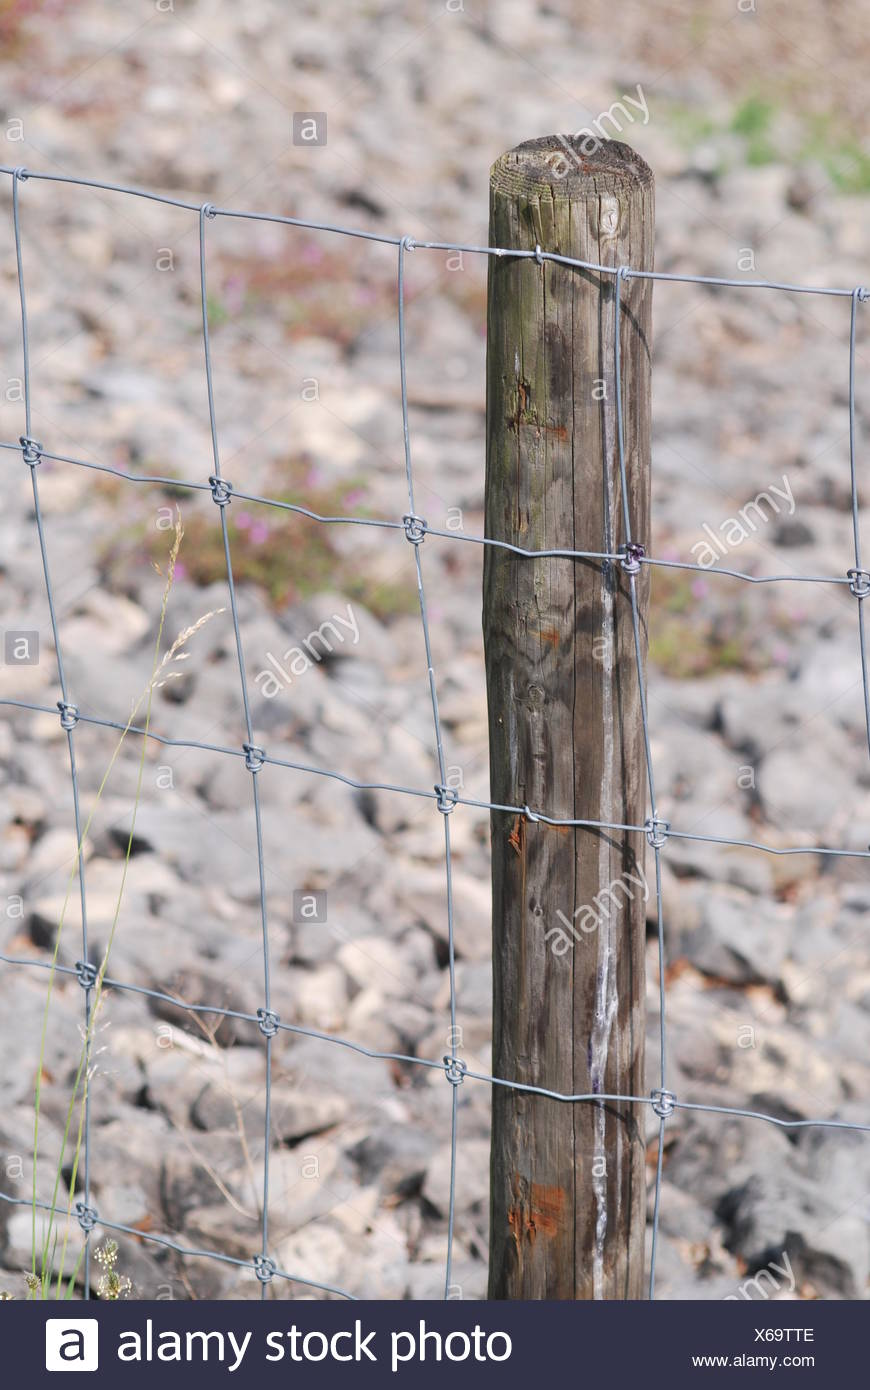 fence metal wire wire netting enclosed post locked closed ausgegrenzt - Stock Image